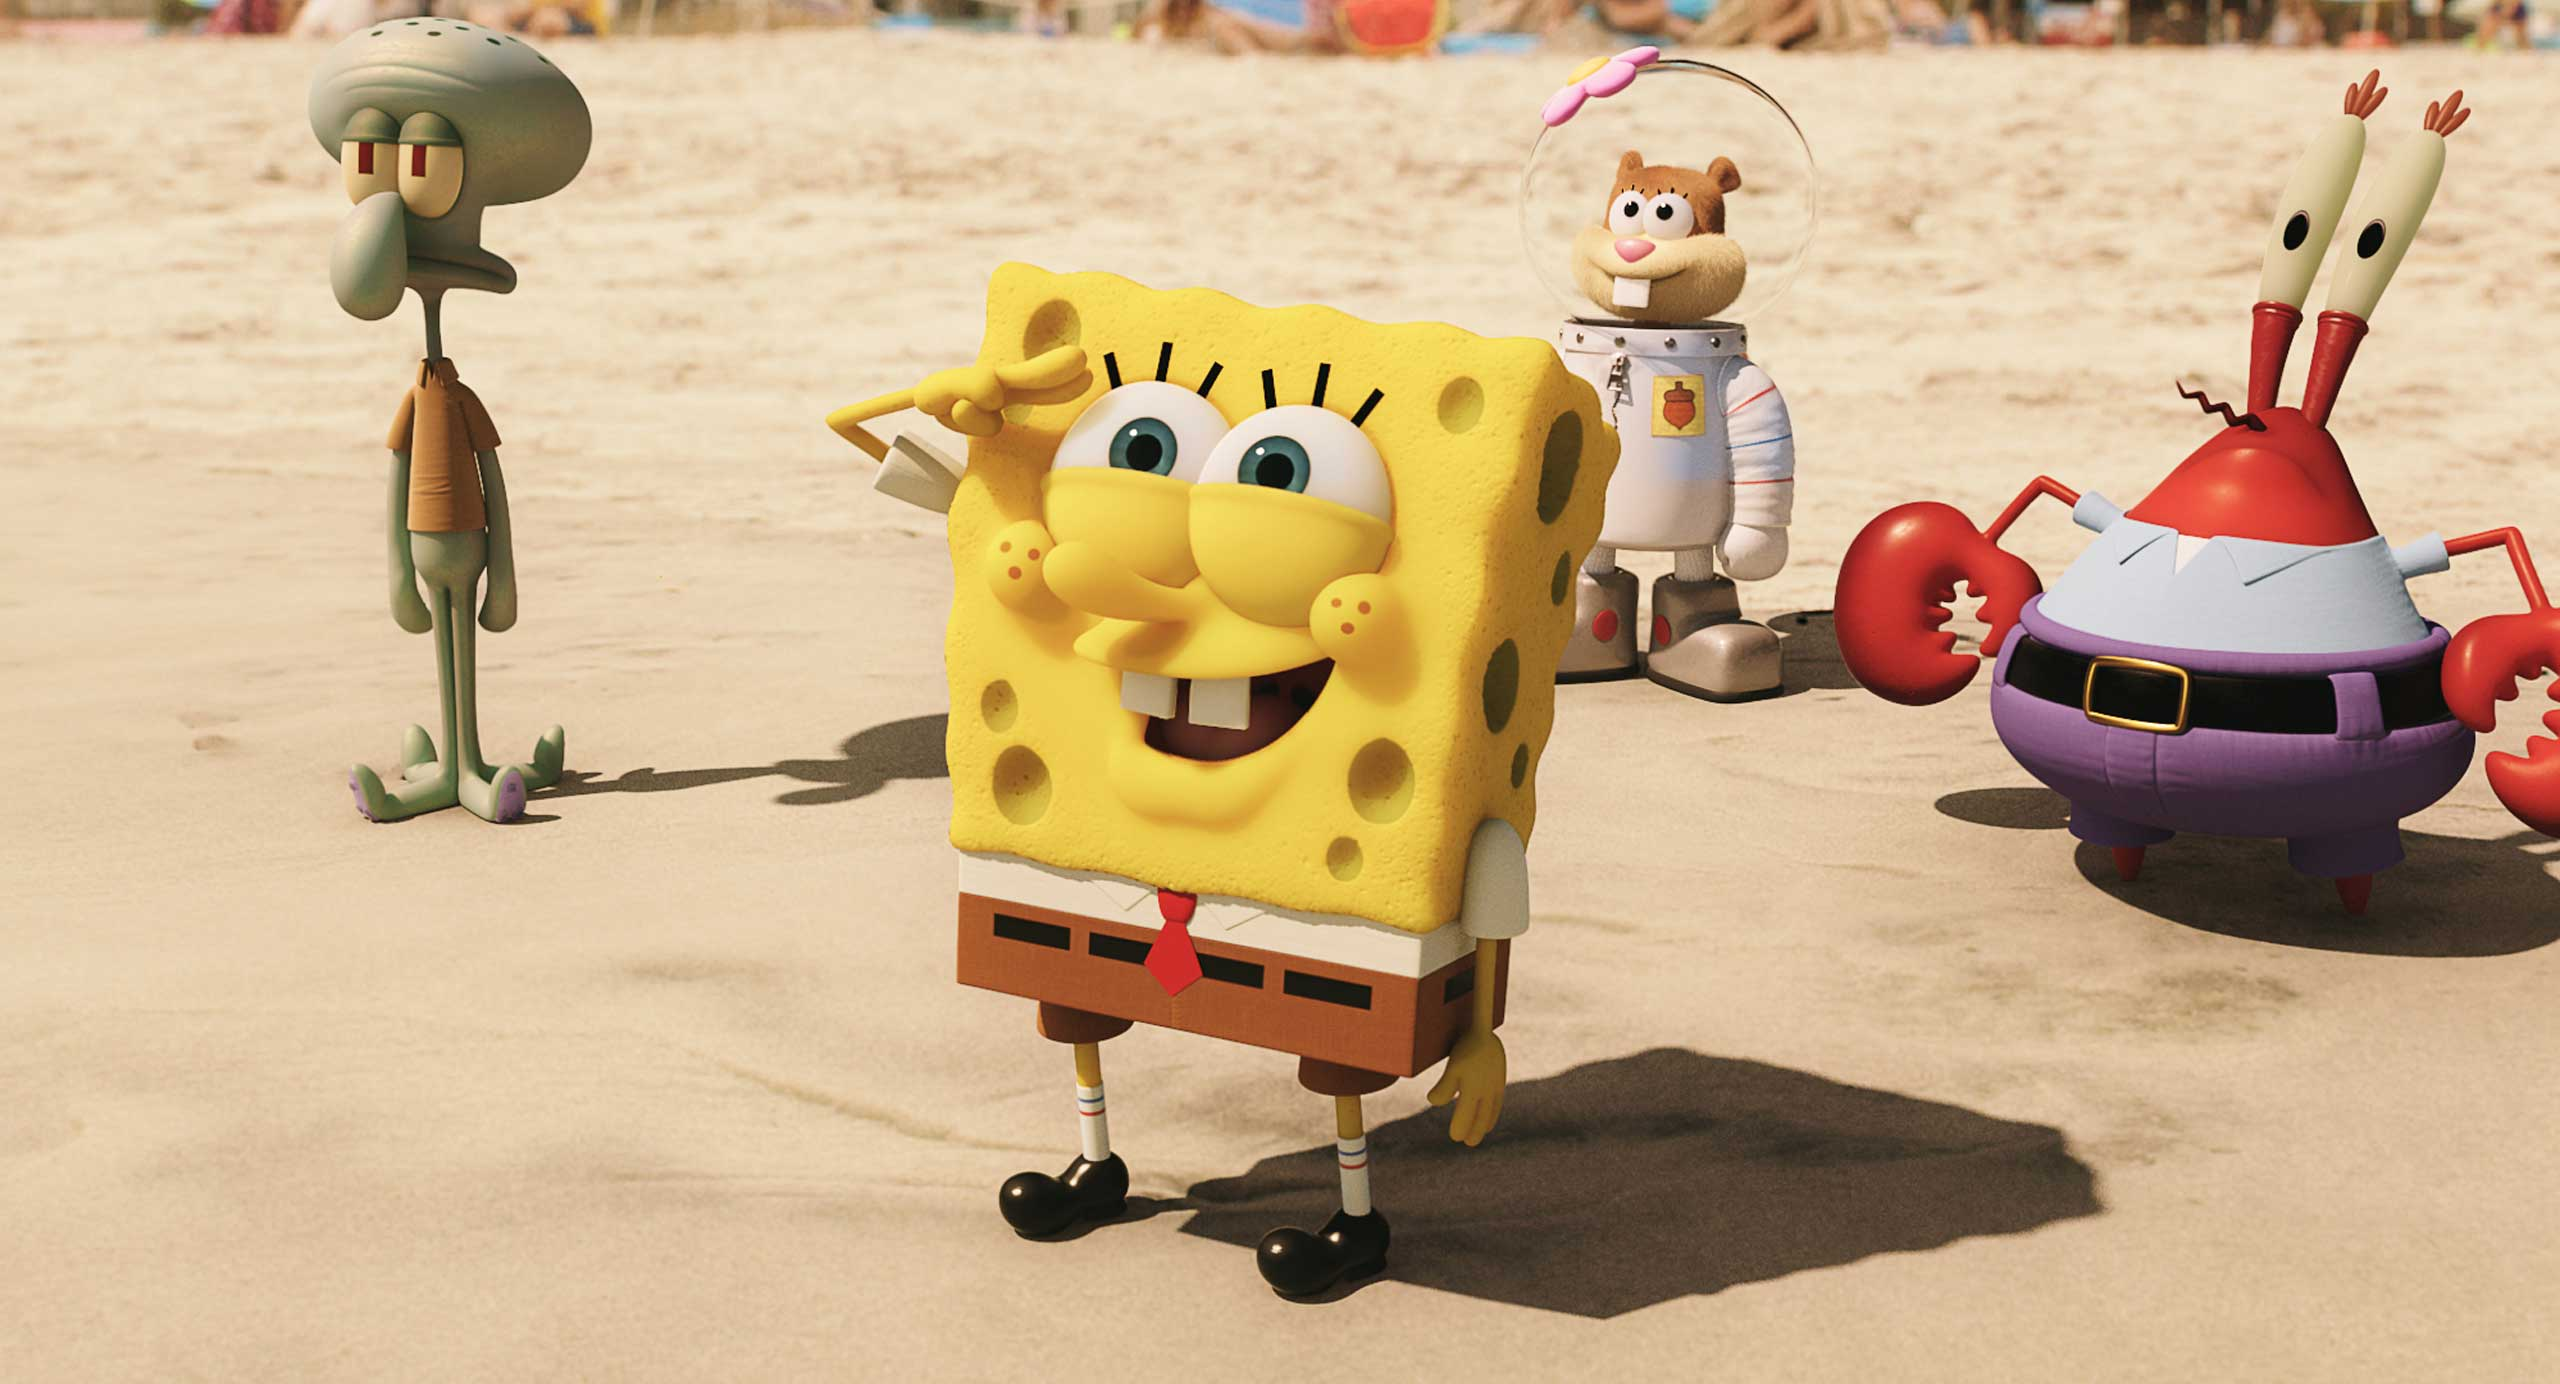 The Spongebob Movie: Sponge Out of Water, from Paramount Pictures and Nickelodeon Movies.